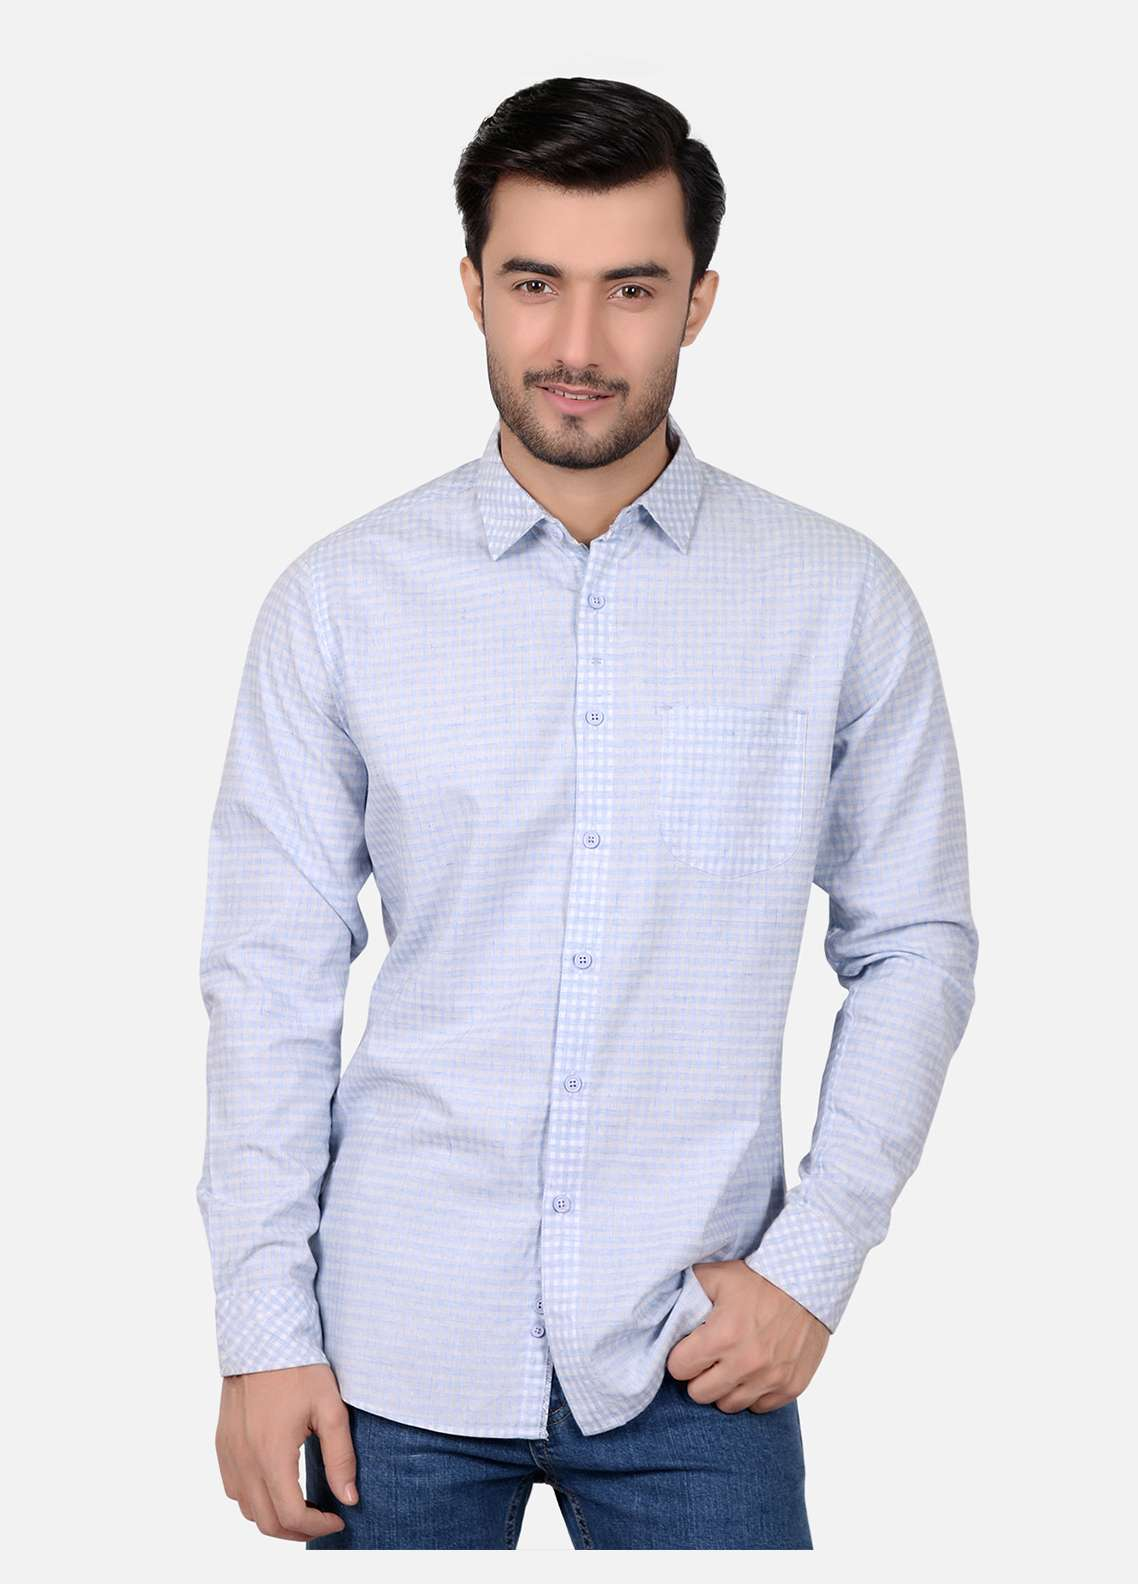 Furor  Casual Men Shirts - Light Blue FRM18CS 31206